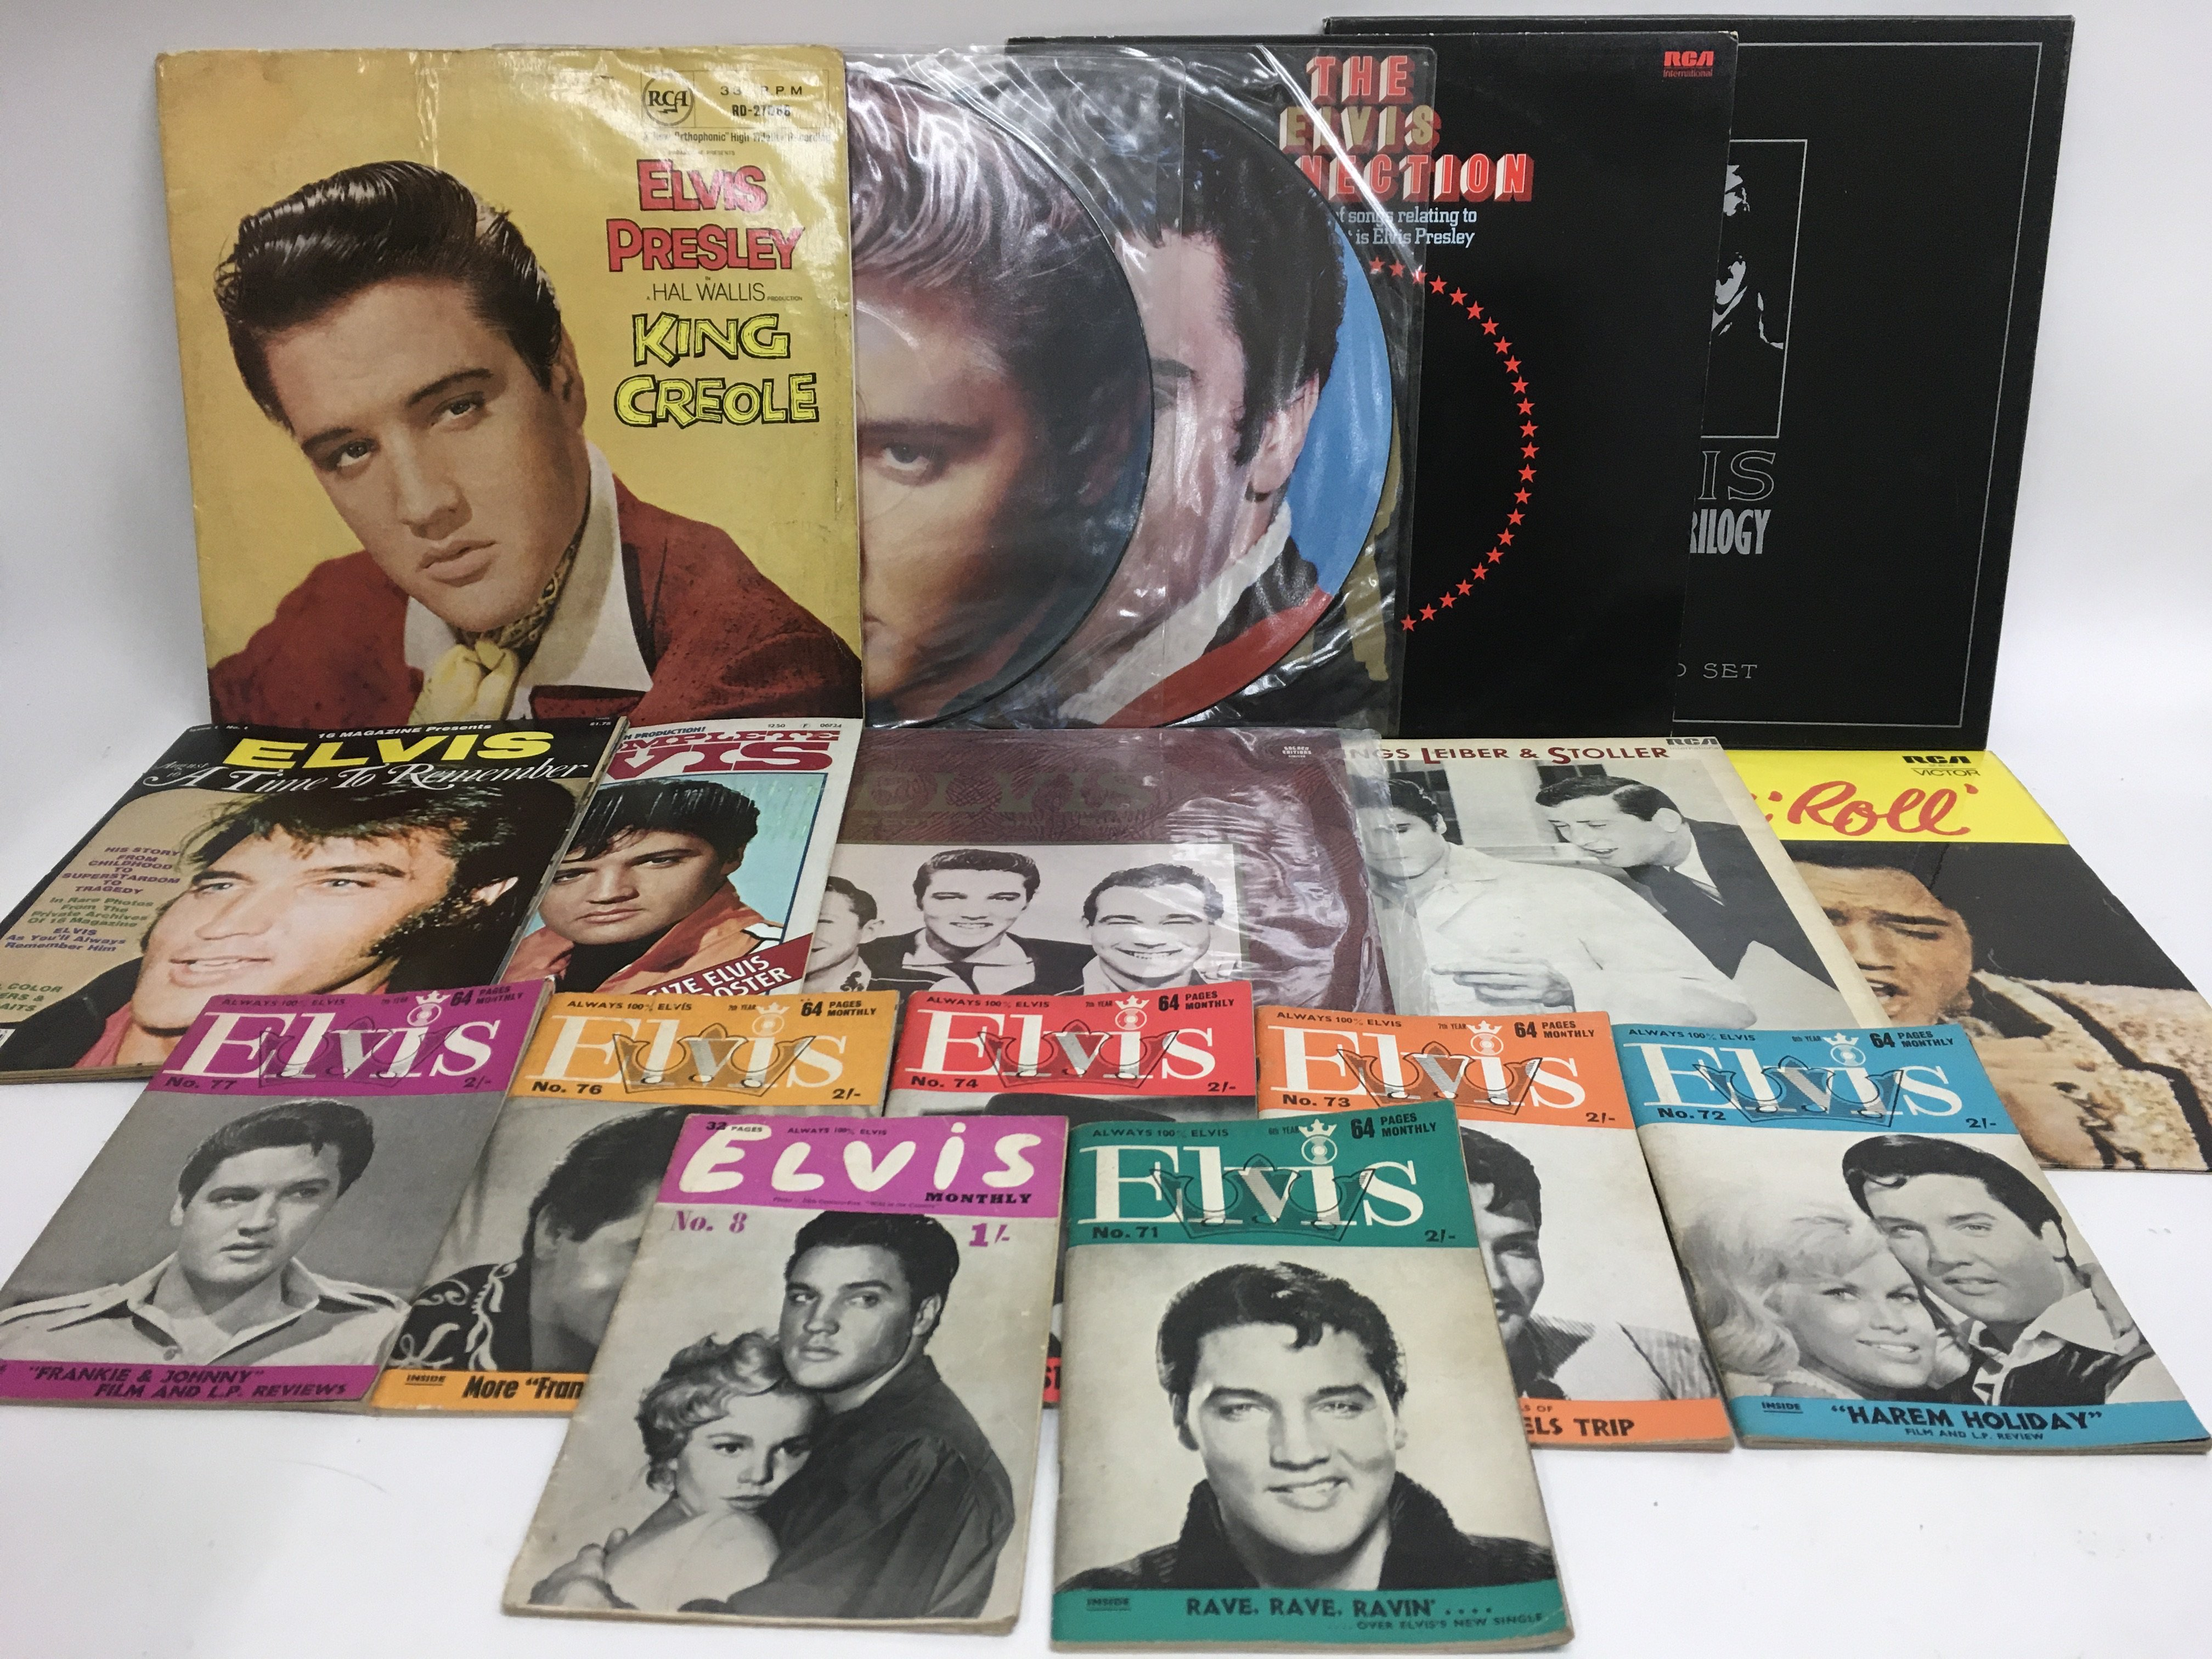 A collection of Elvis Presley LPs, picture discs,